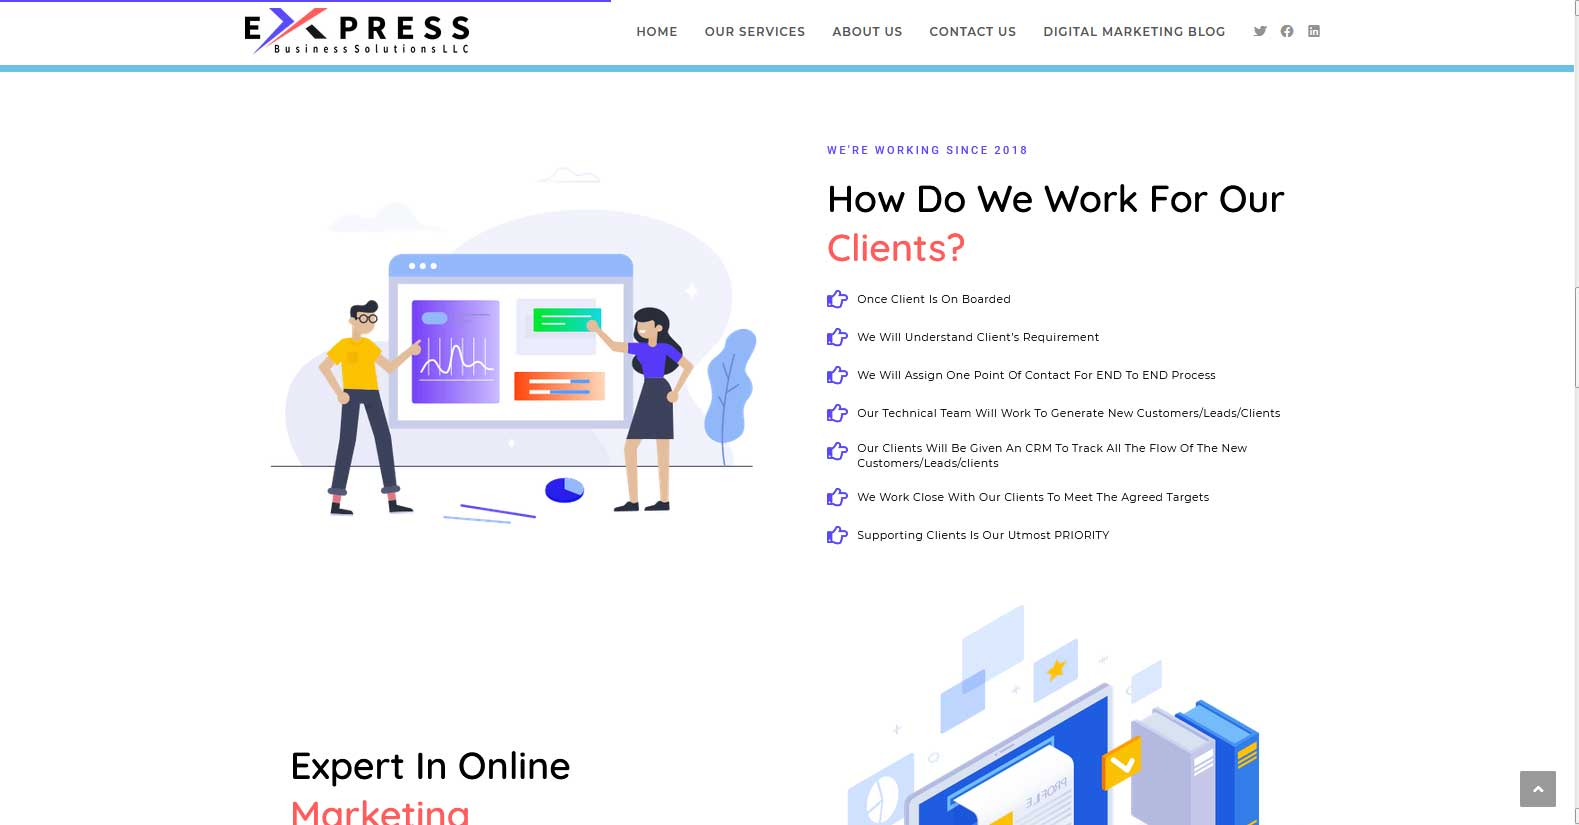 express-biz-sol-how-do-we-work-for-our-clients